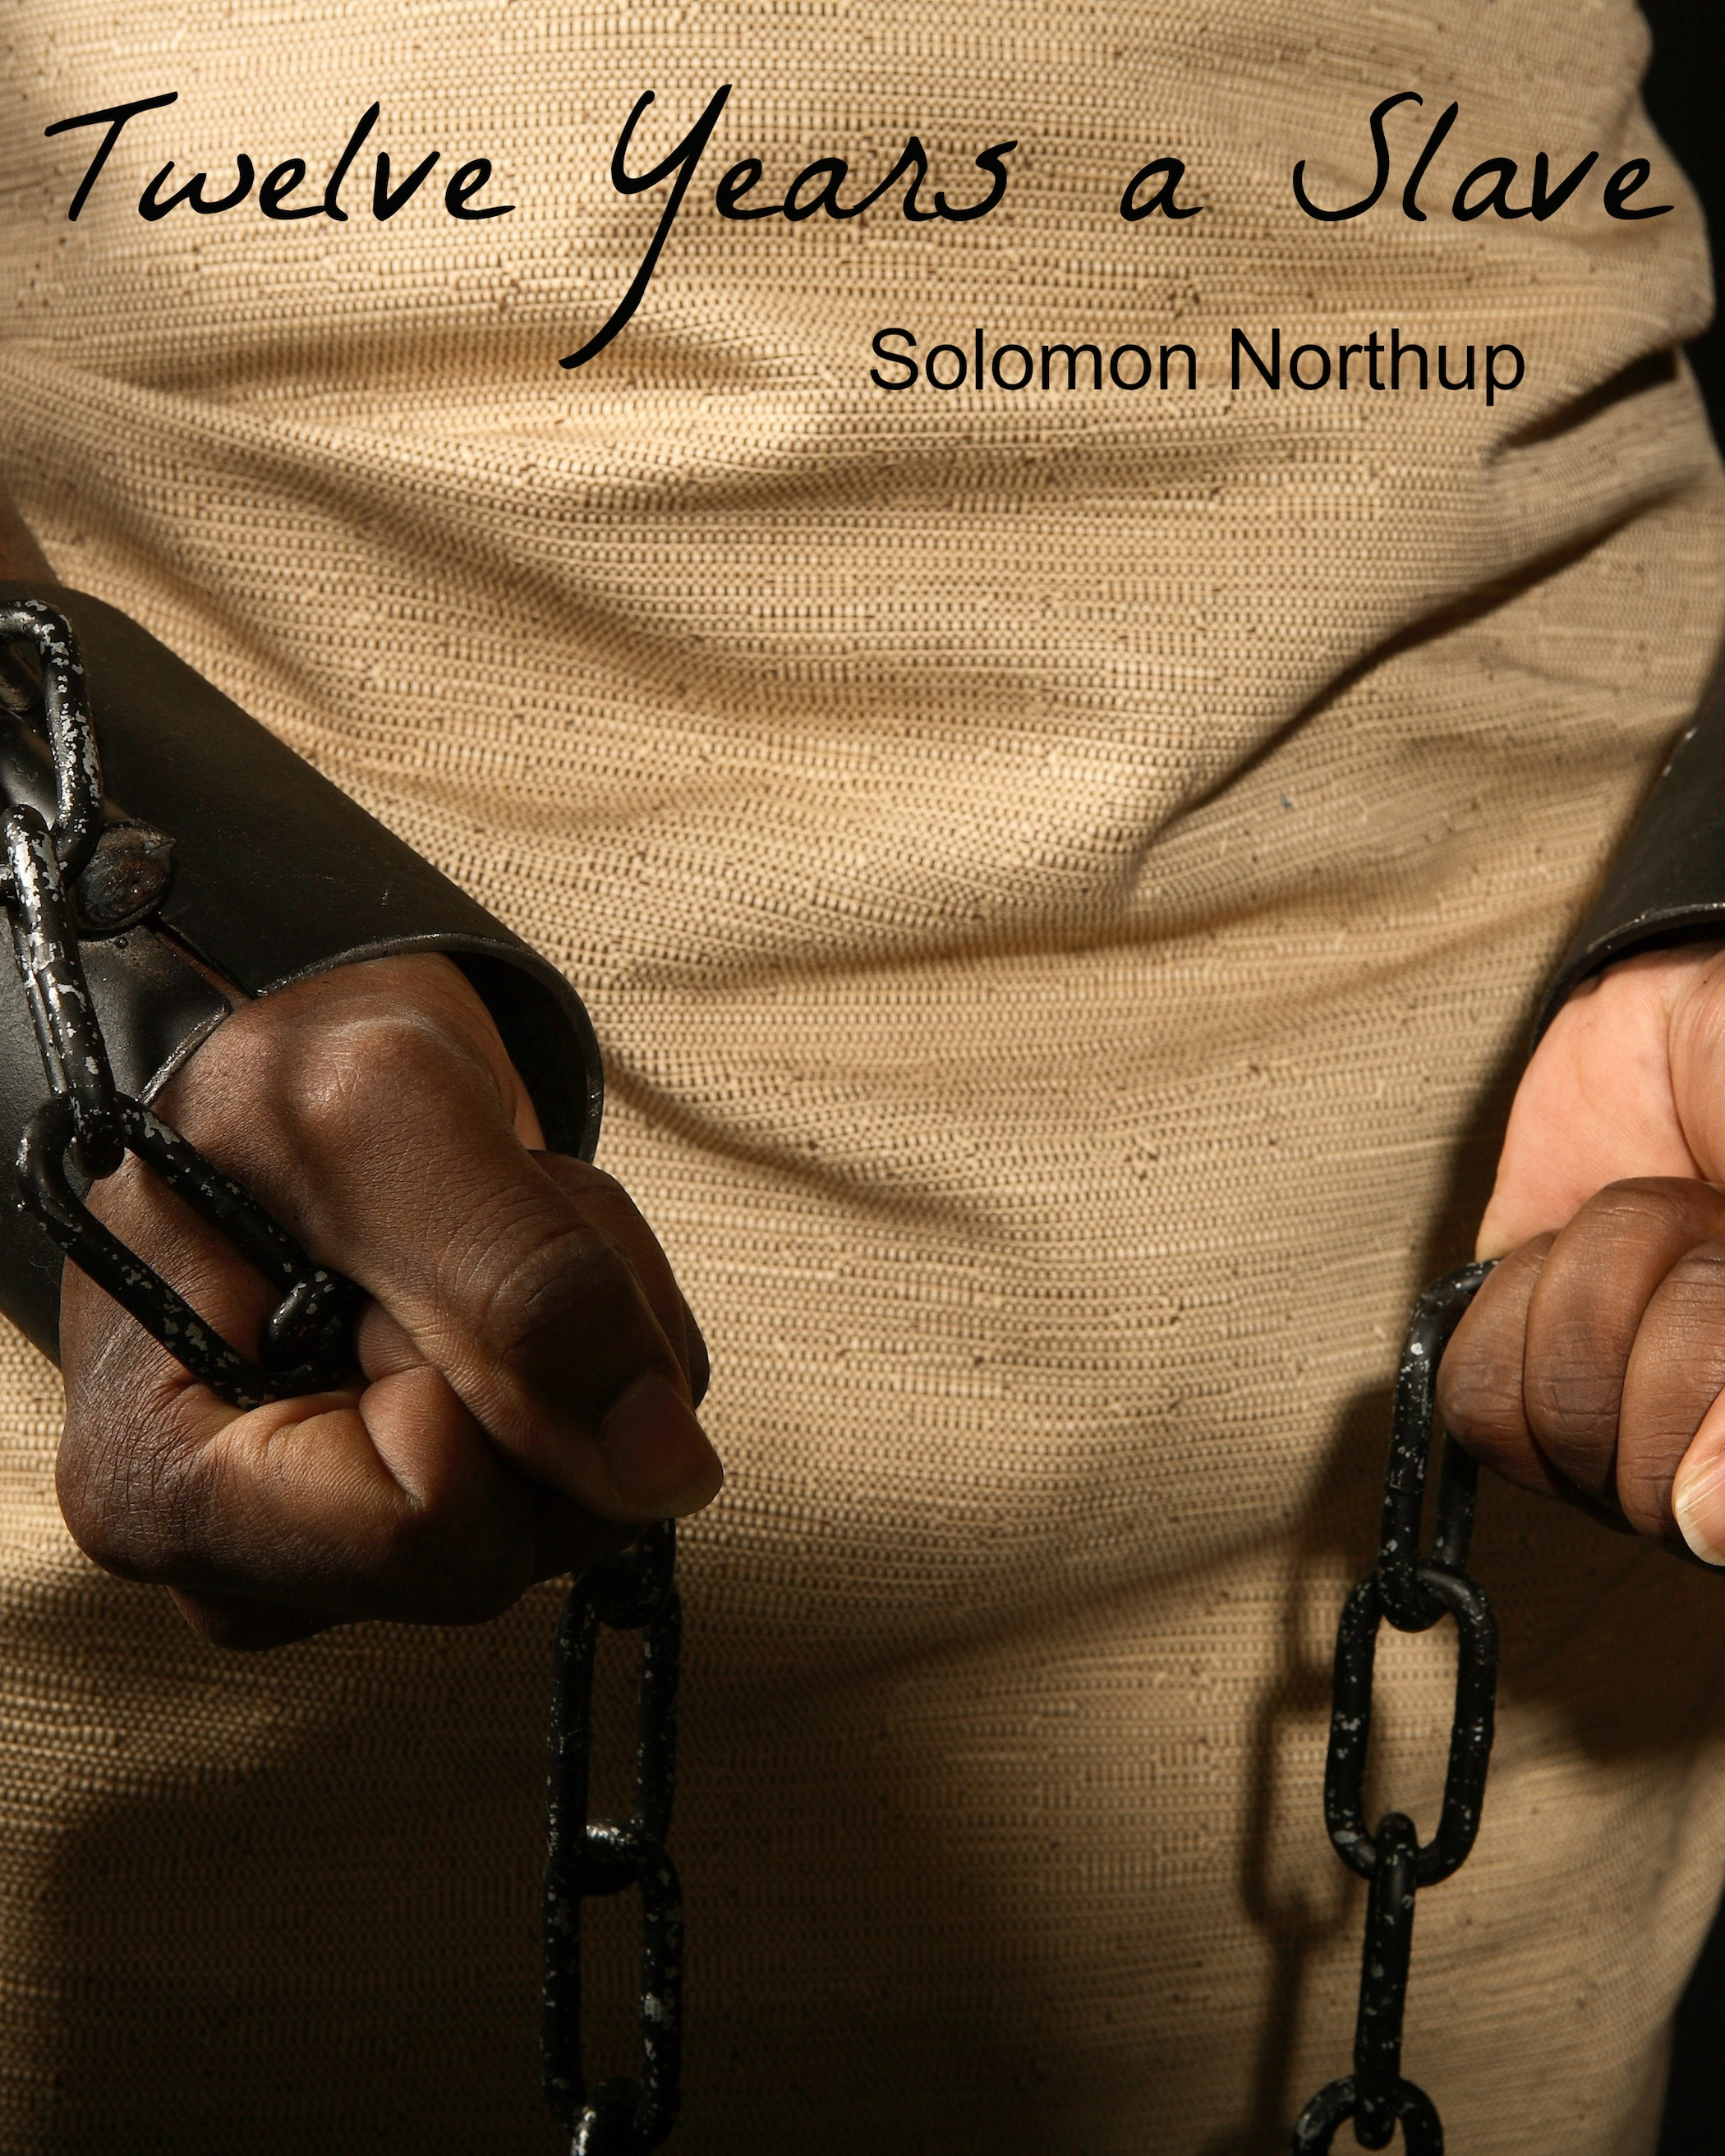 Solomon Northup - Twelve Years A Slave (Full Book and Comprehensive Reading Companion)